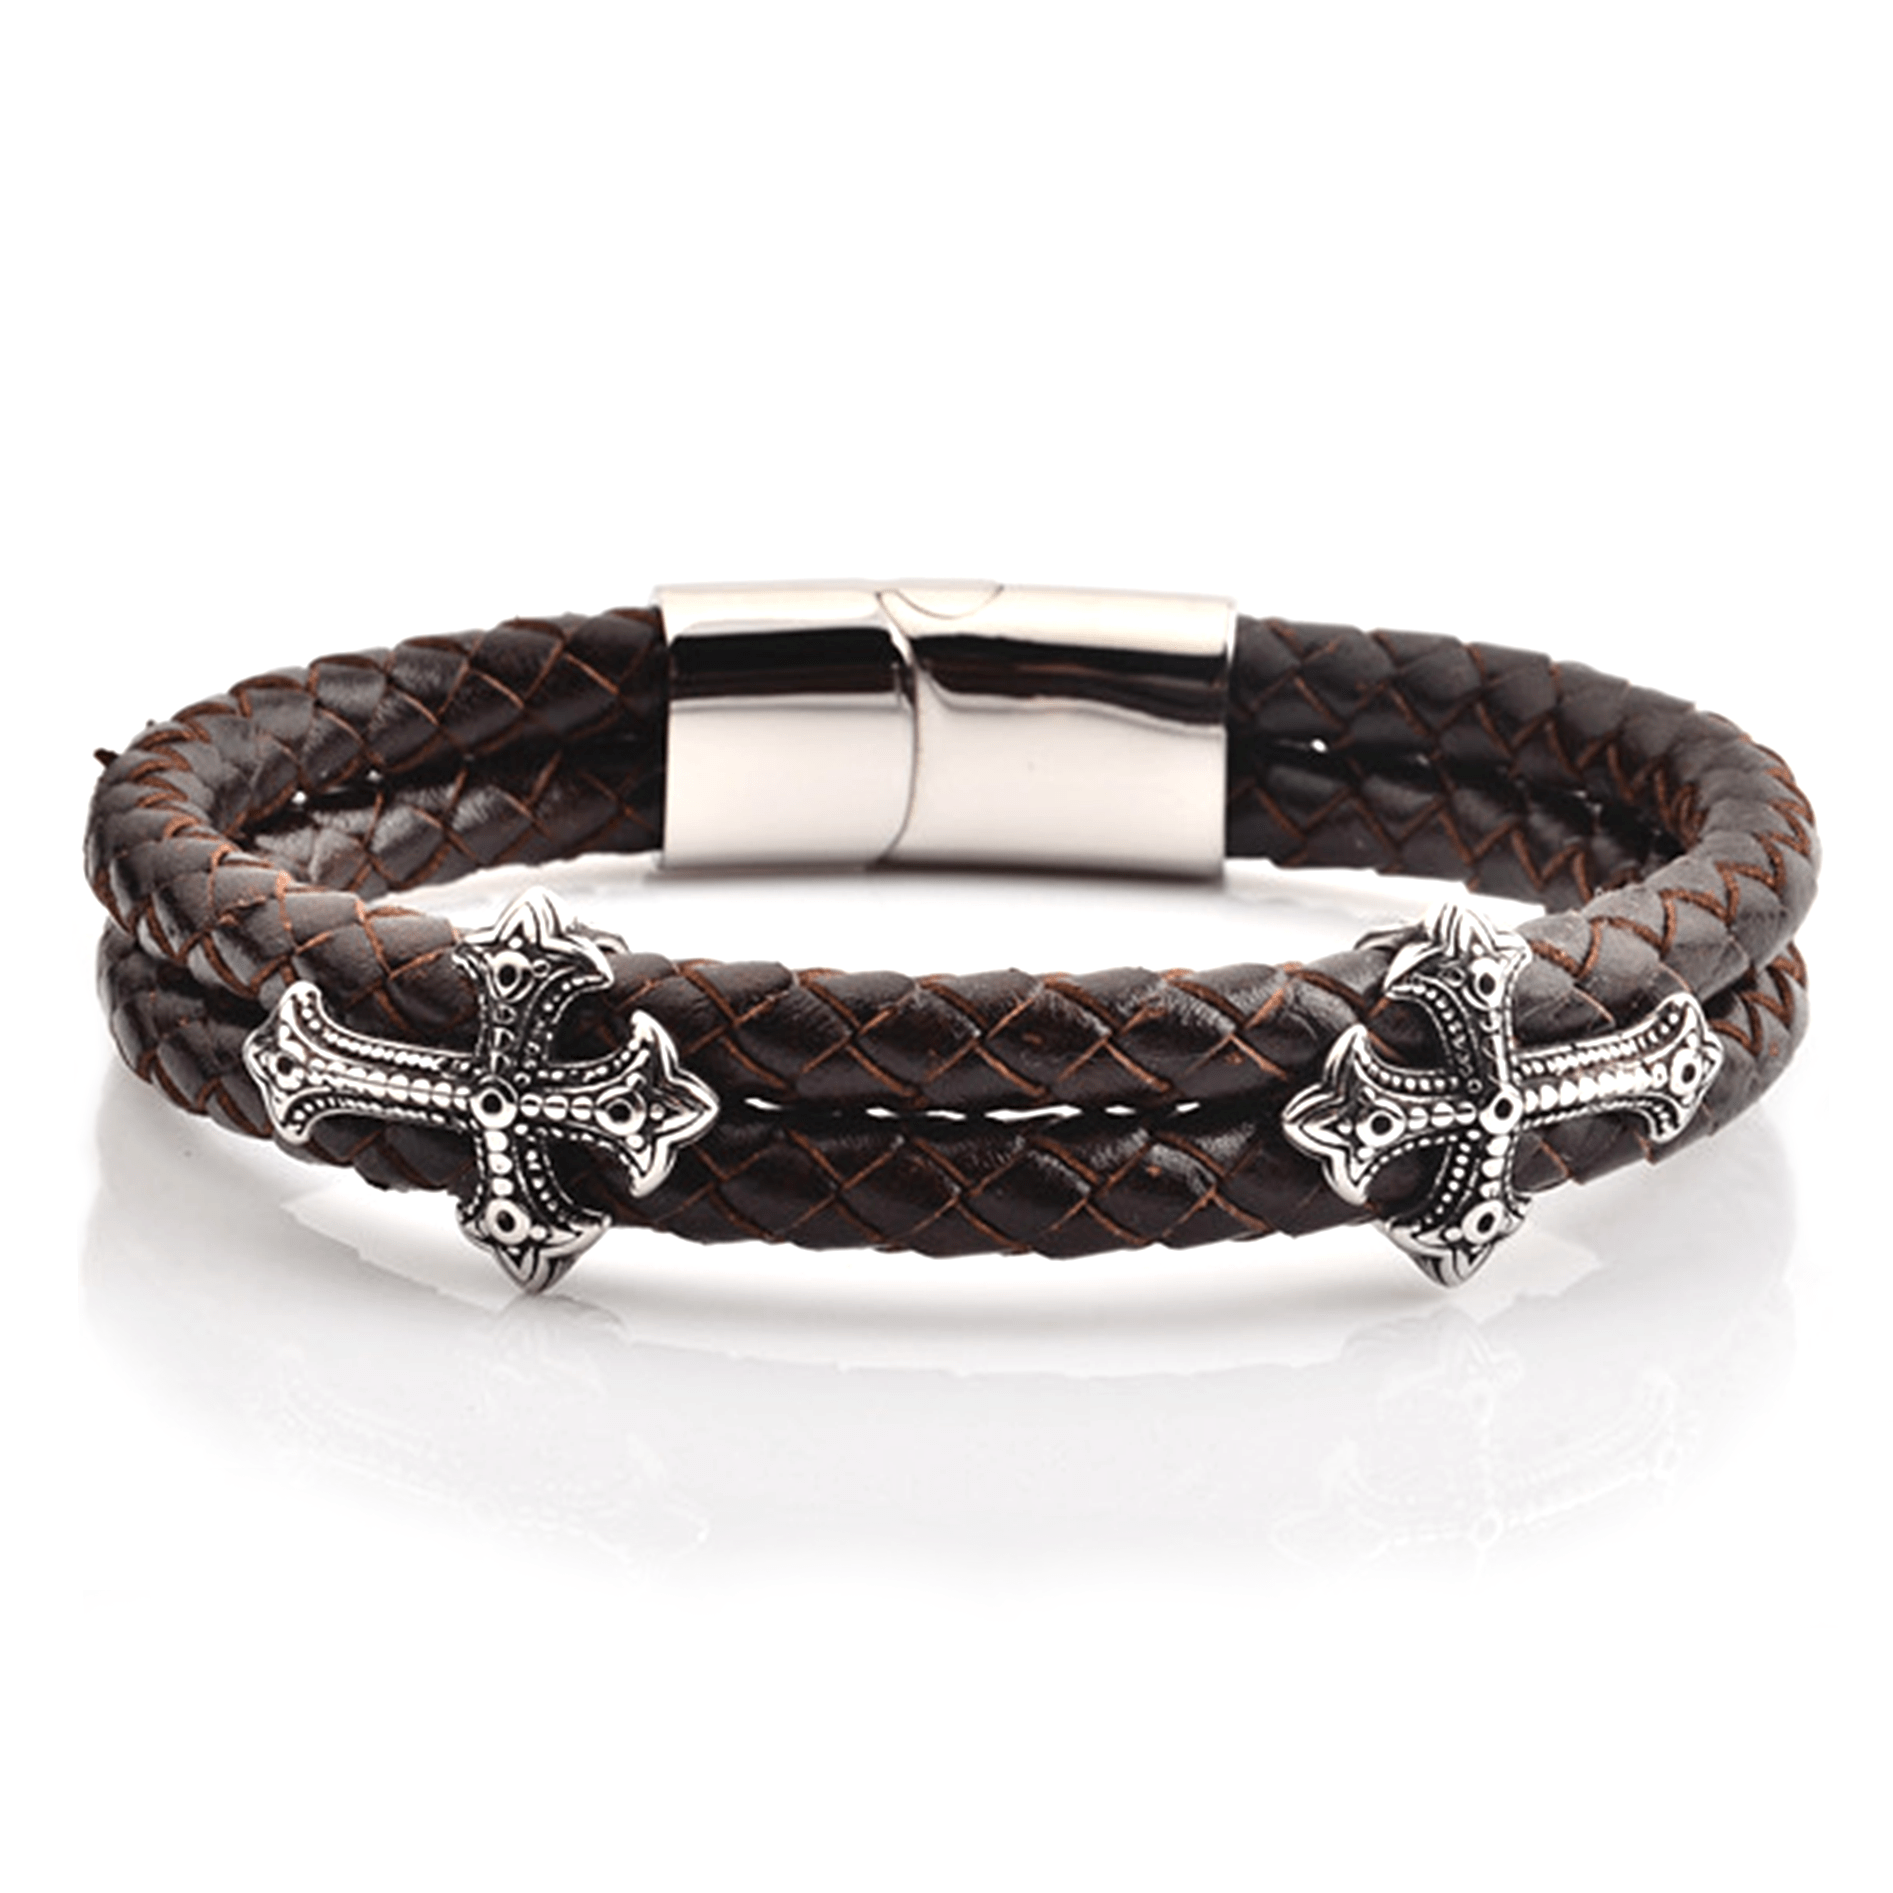 HYLIZO Nelore Series 385 - Rustic Brown Leather bracelet with 316 Stainless Steel Engraved Cross and Stainless steel Clasp